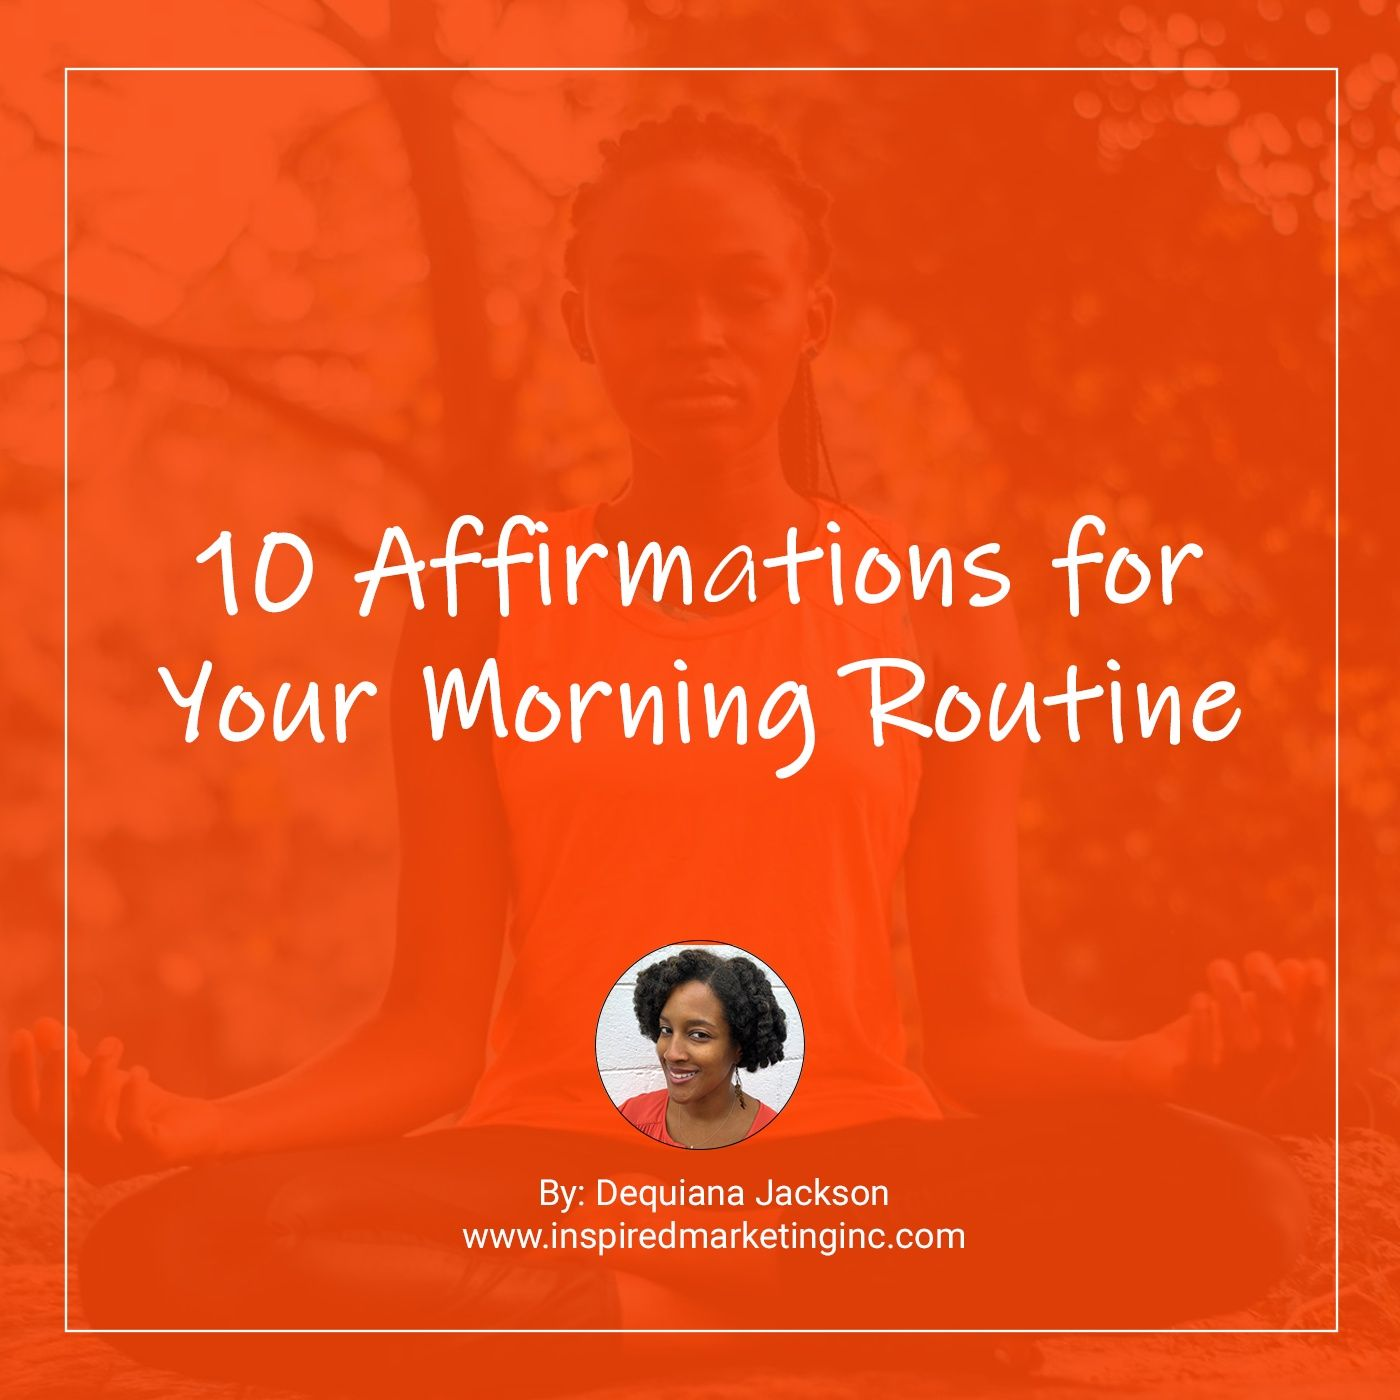 10 Affirmations for Your Morning Routine